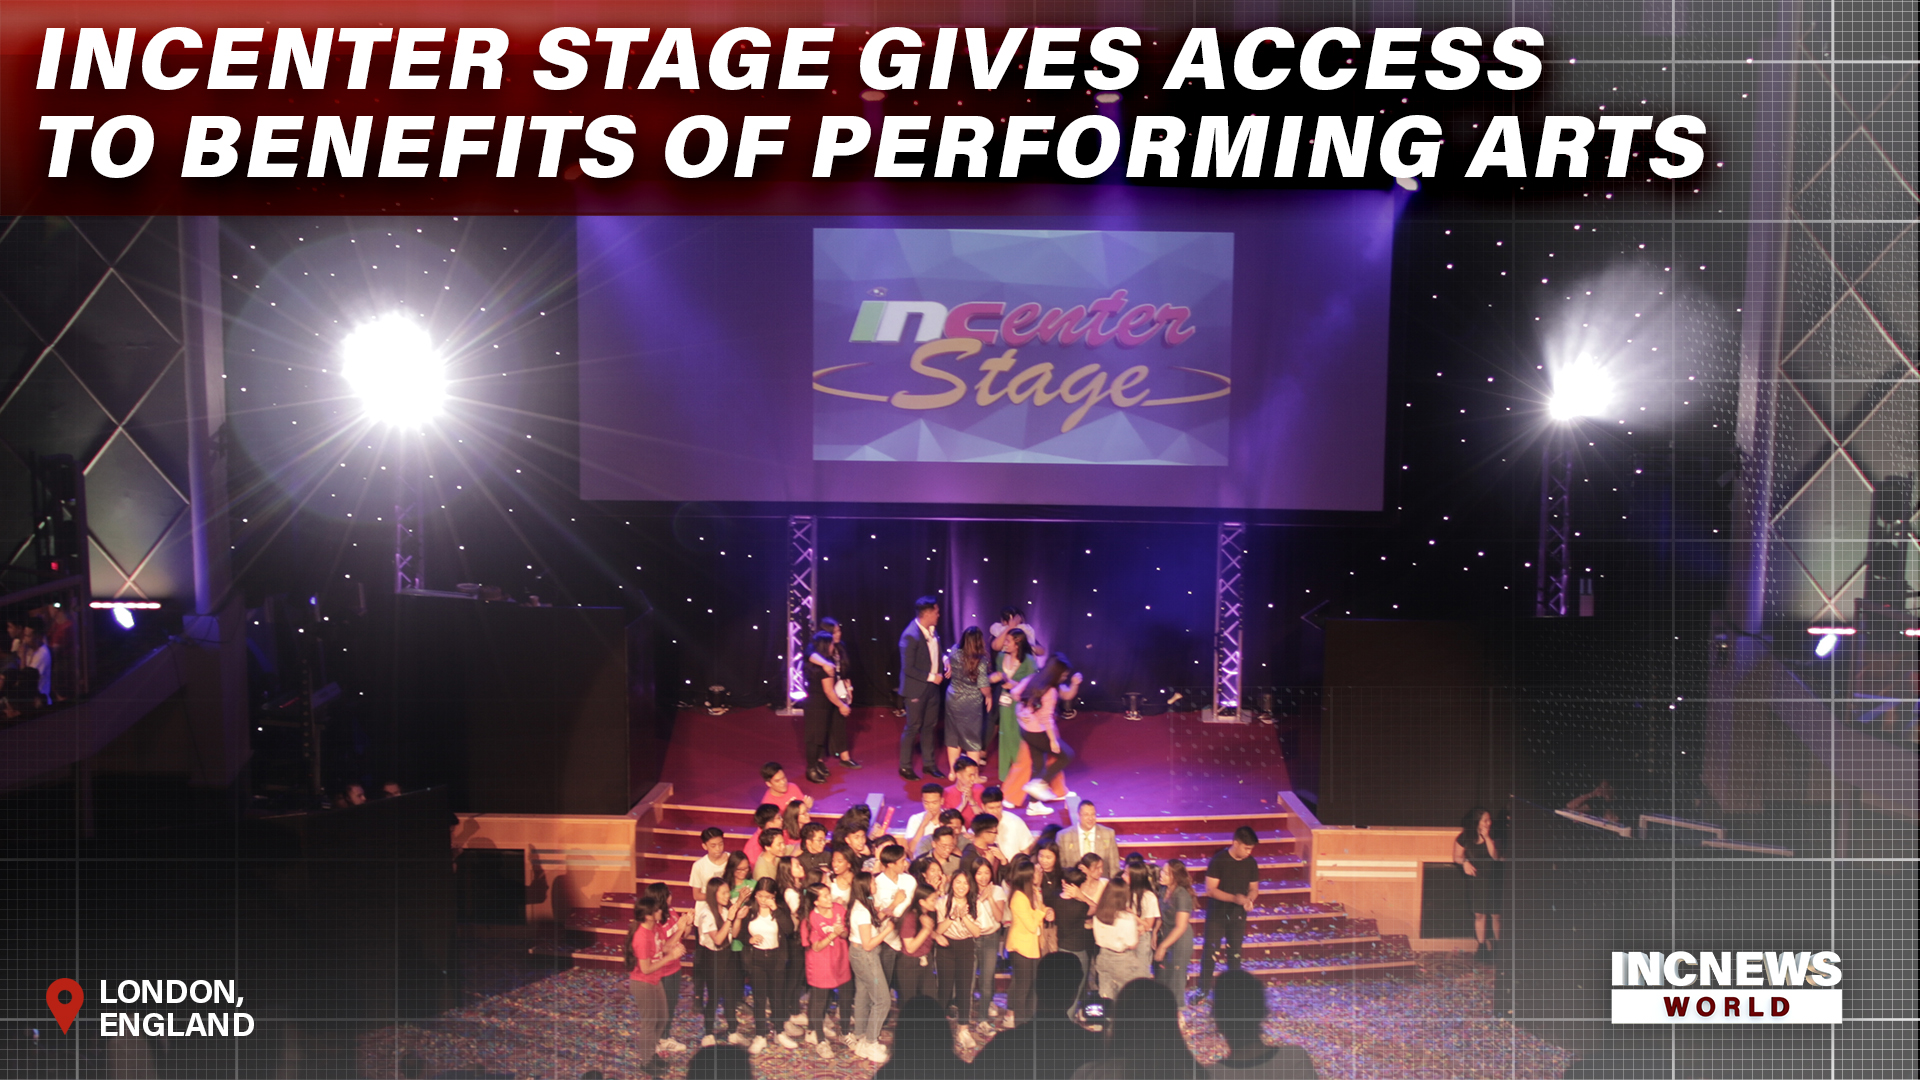 INCenterstage Gives Access to Benefits of Performing Arts